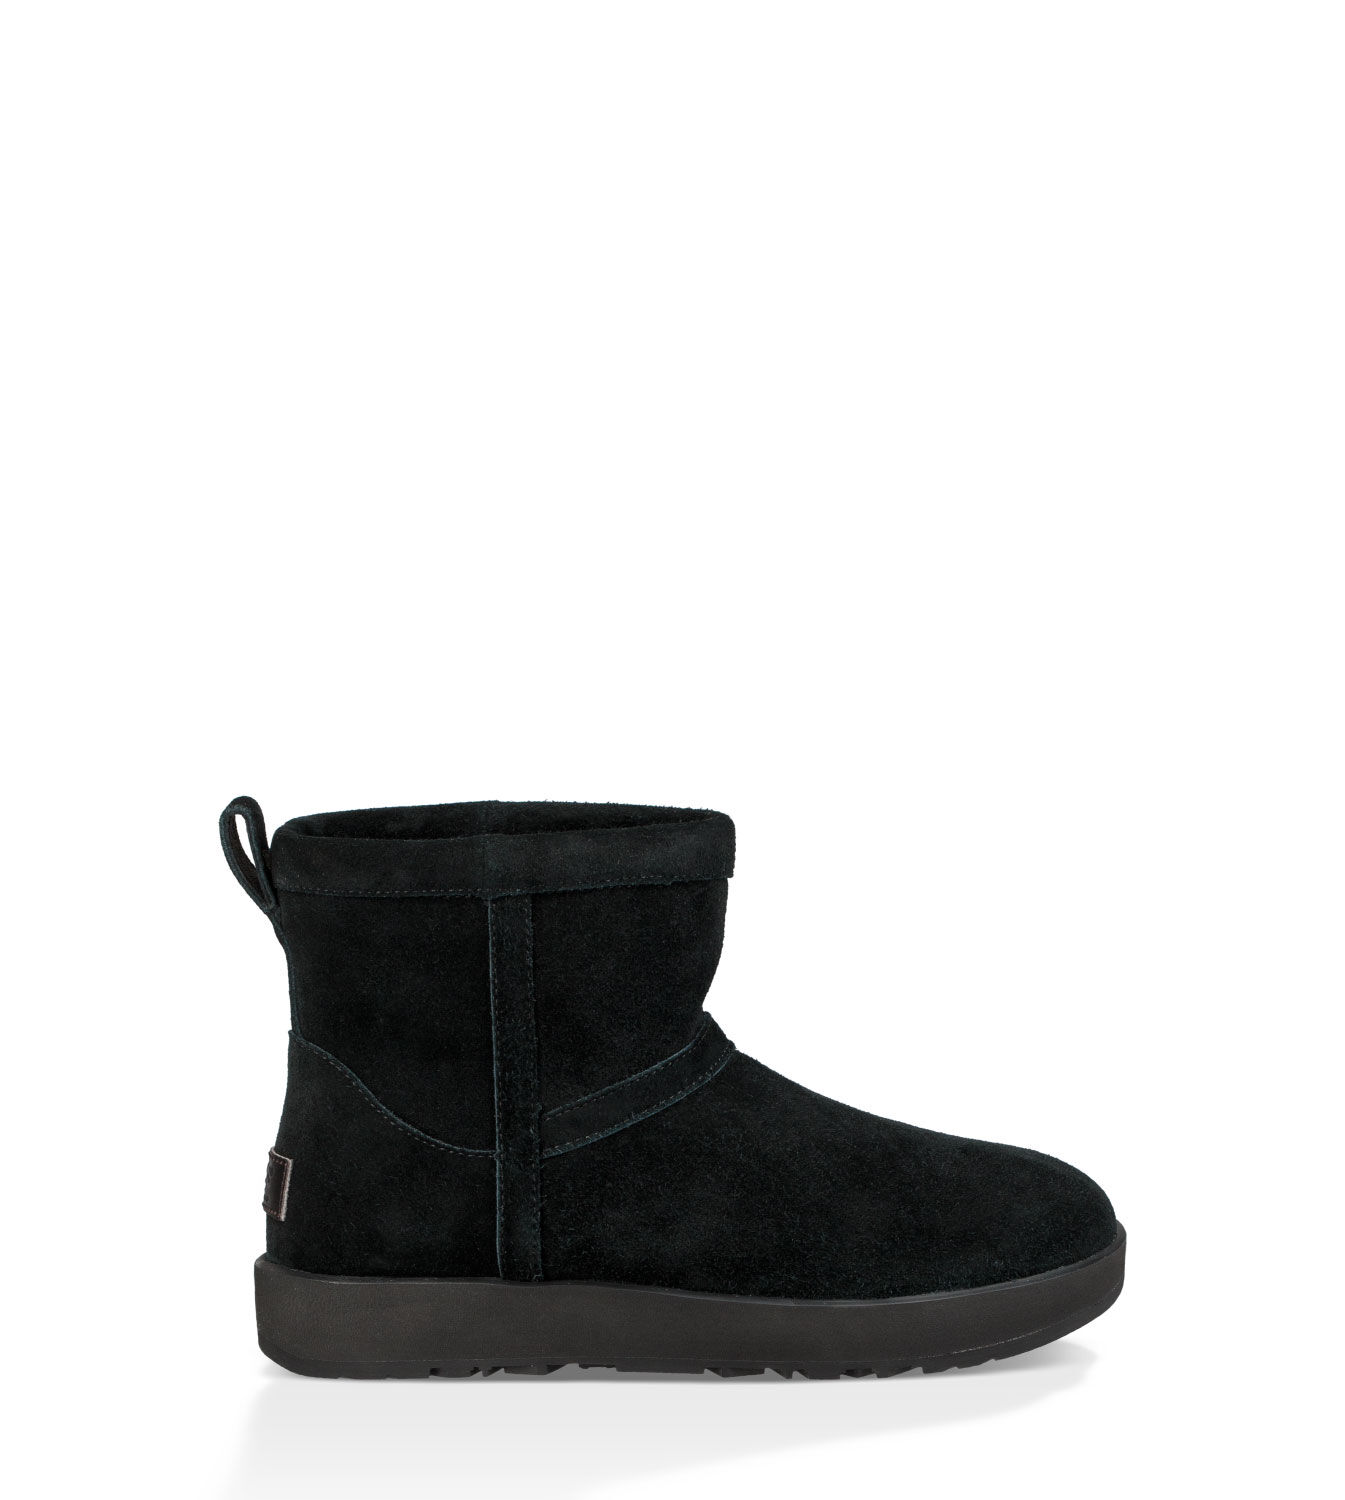 differenza tra ugg mini e ugg mini ii